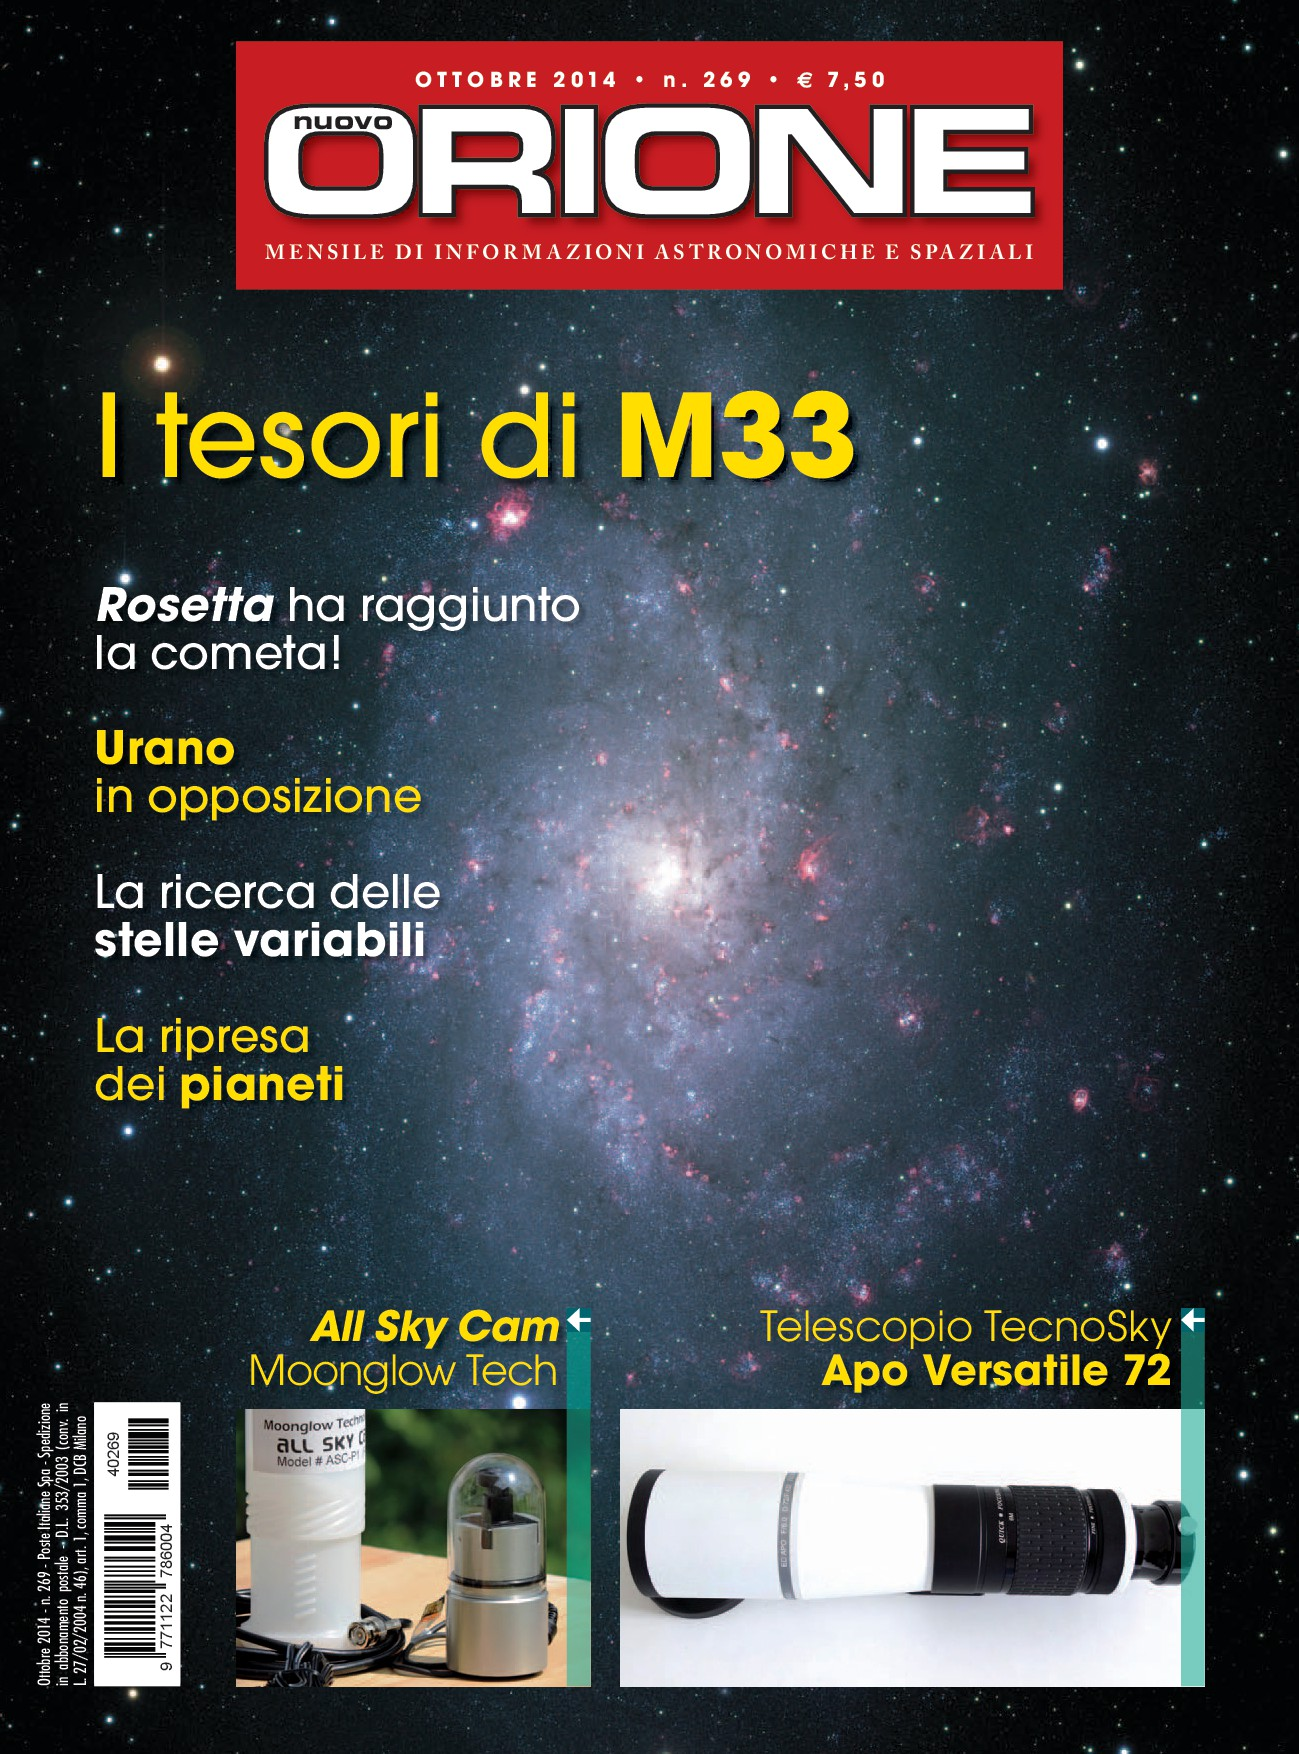 NuovoOrione 2014-10